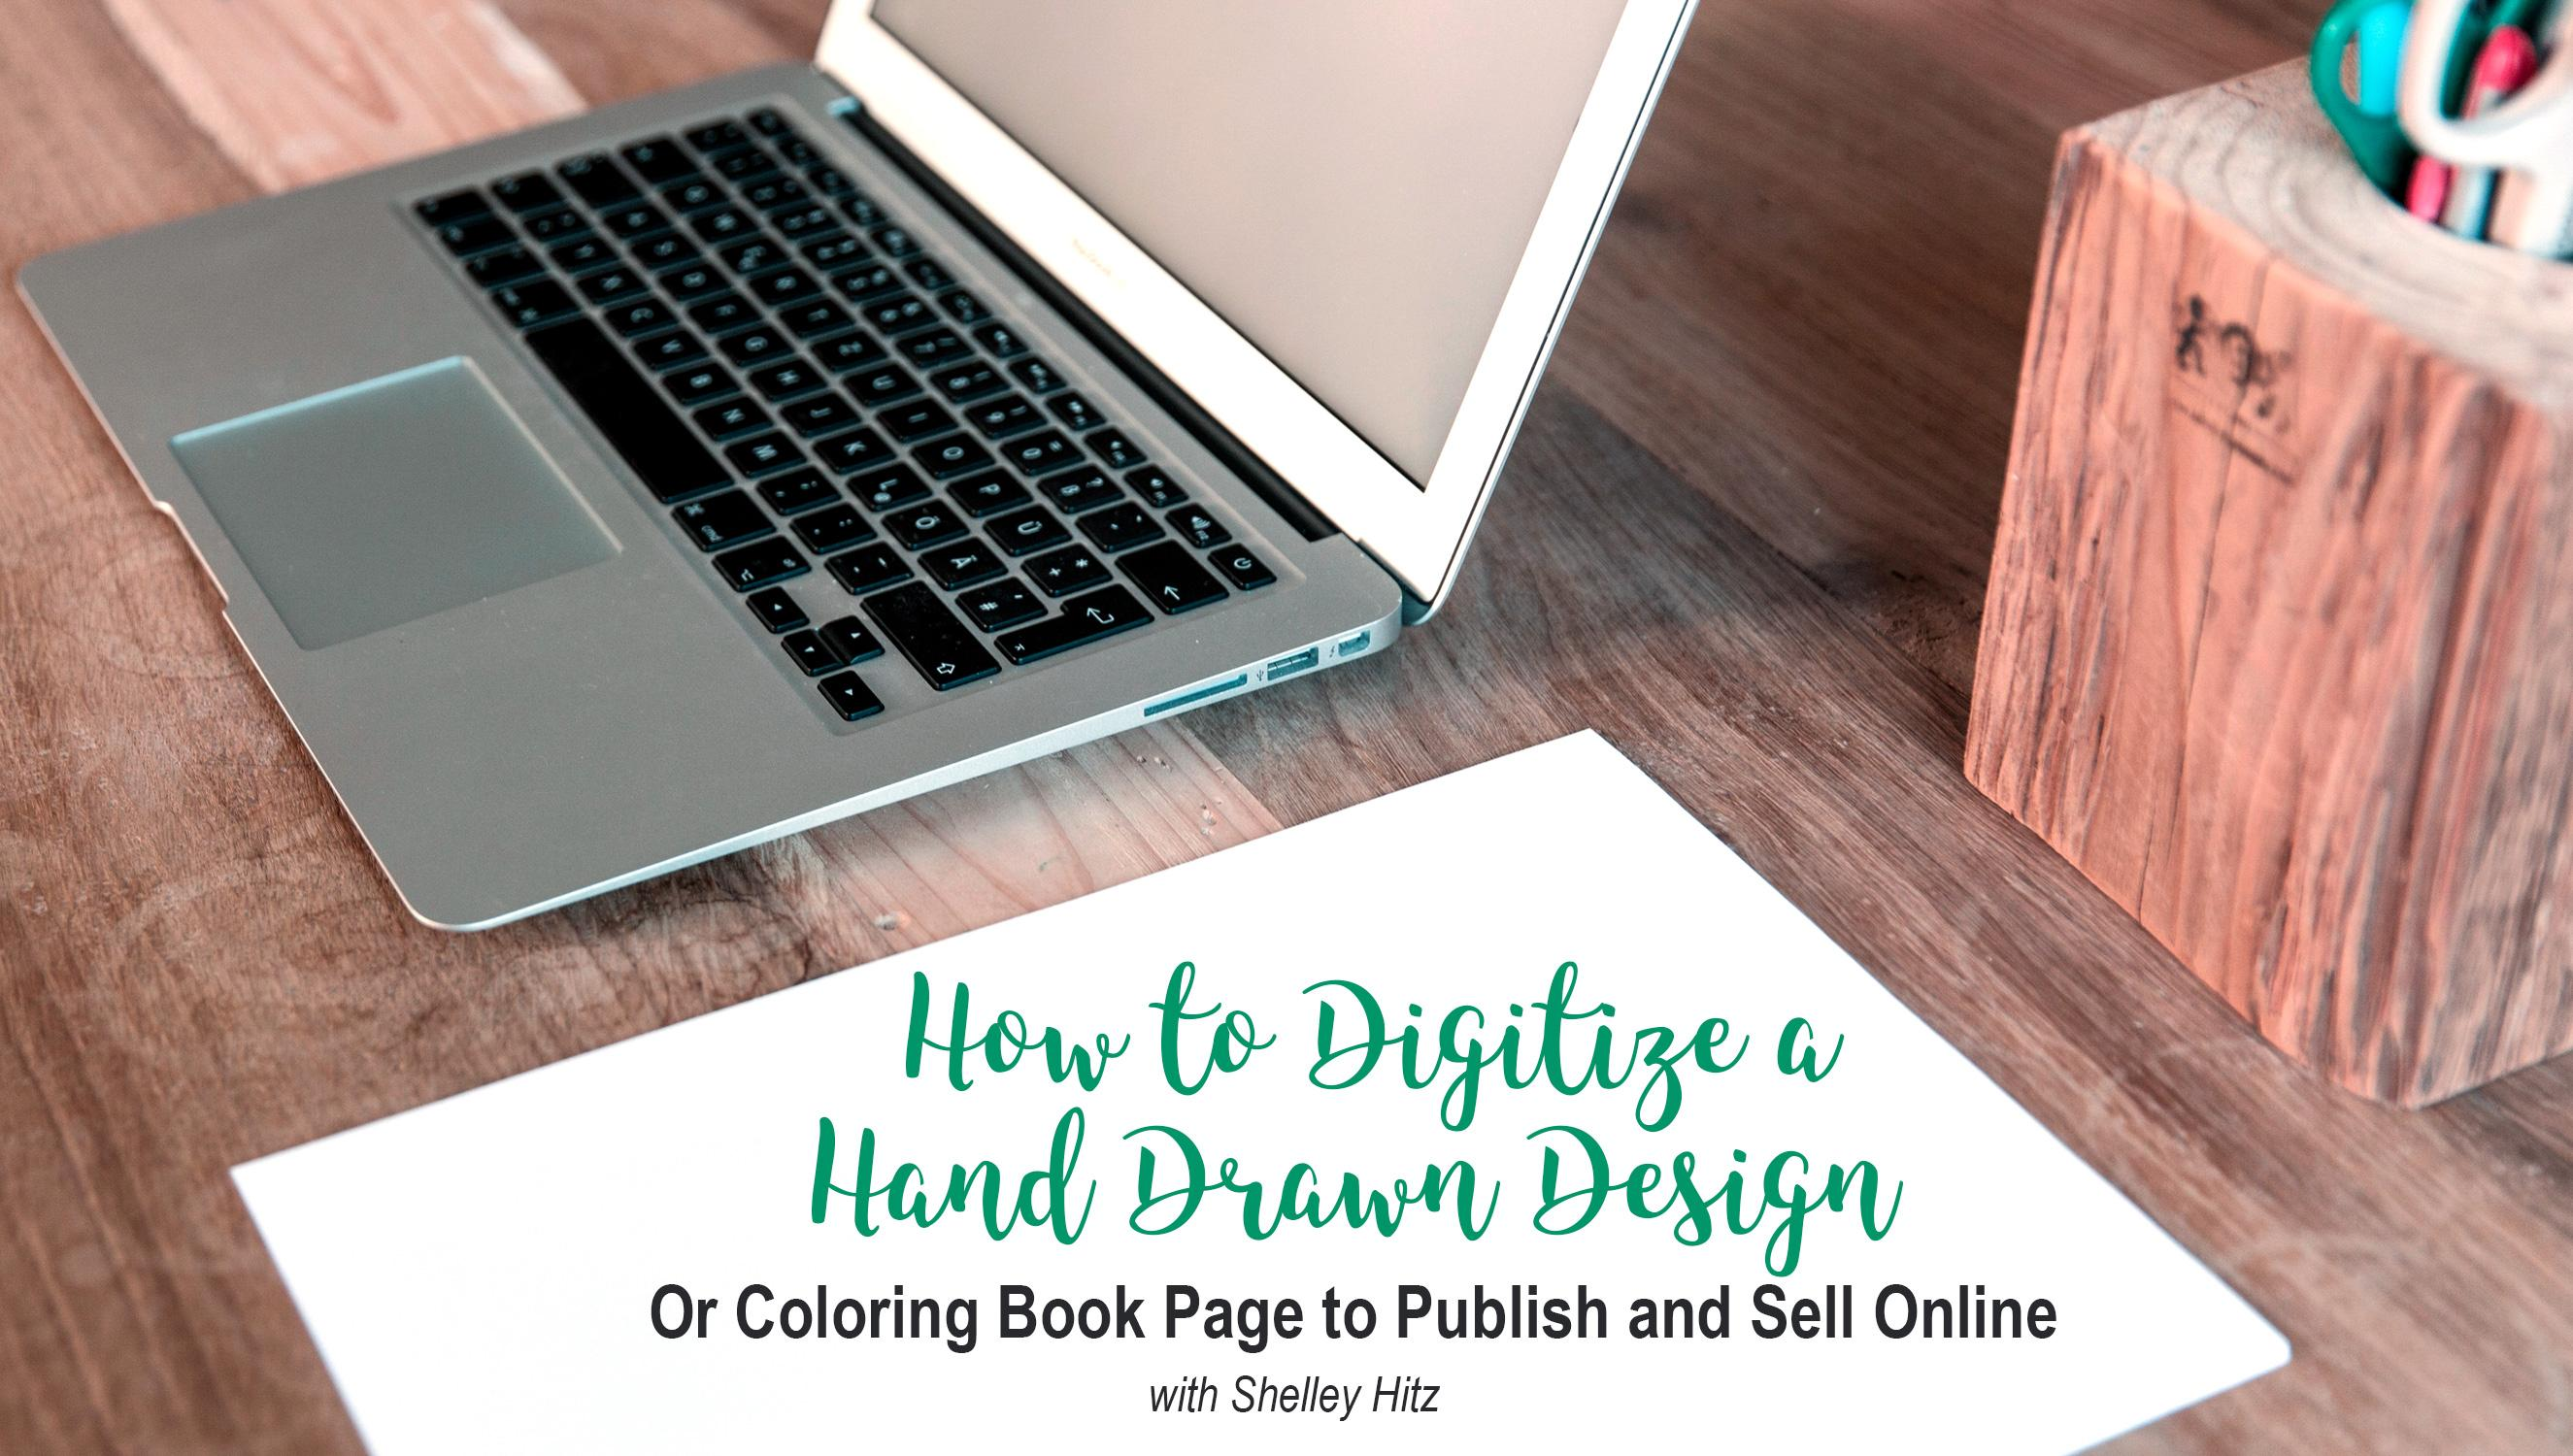 How to Digitize a Hand Drawn Design or Coloring Book Page to Publish ...